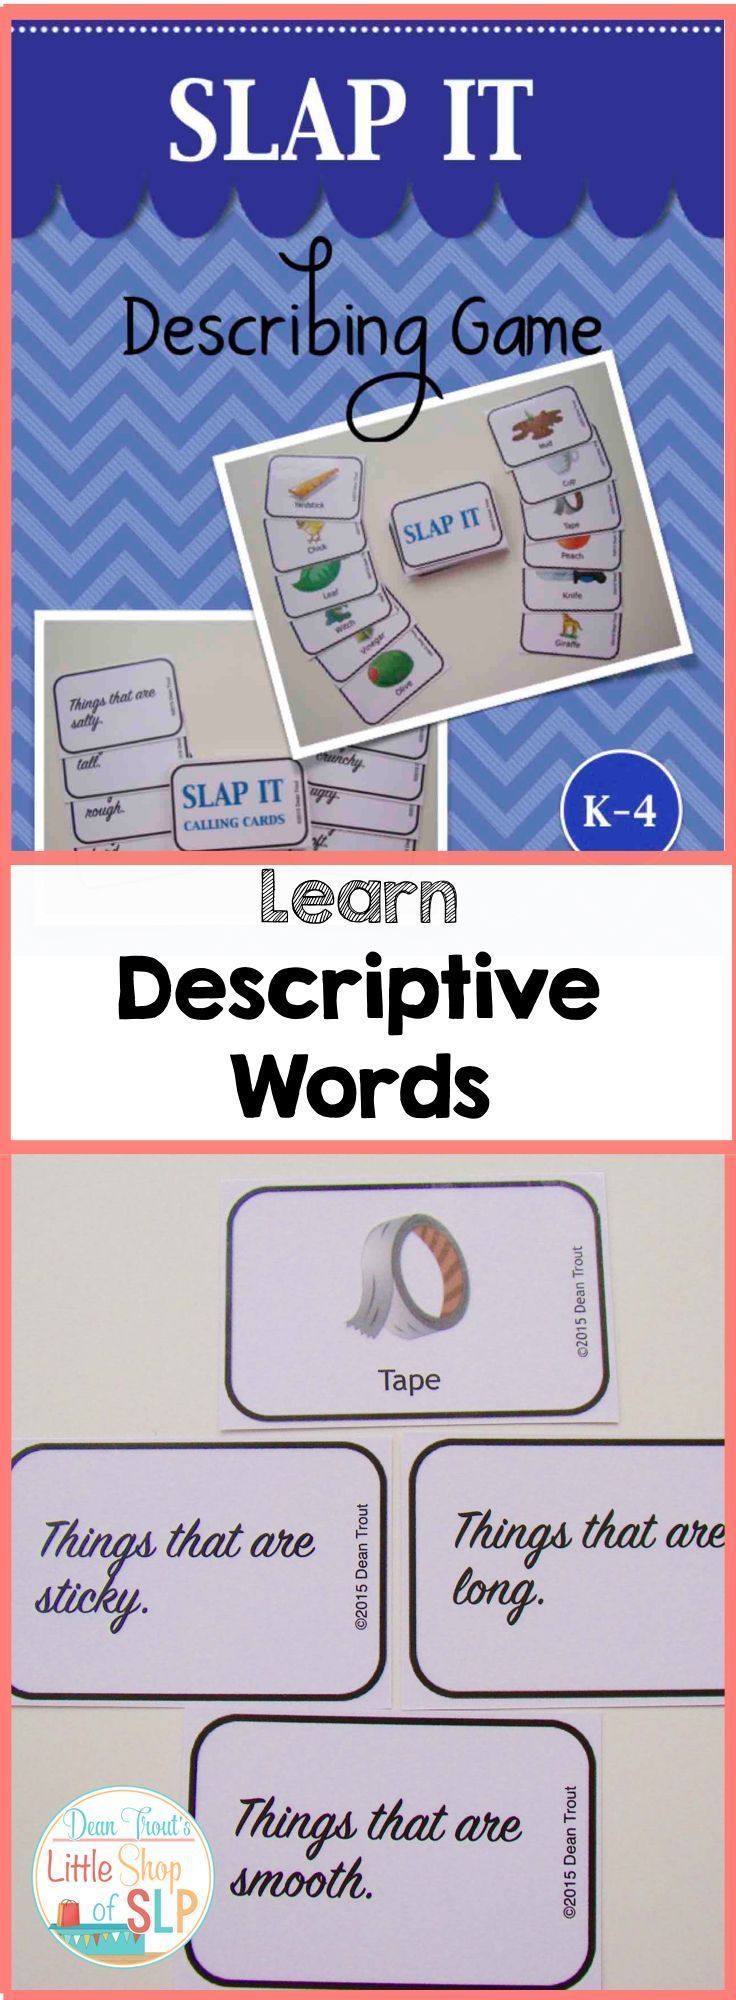 Slap It! This is a fun and fast game to teach descriptive words. Creates lots of discussion and teachable moments, that you can use for elaborating on specific words.